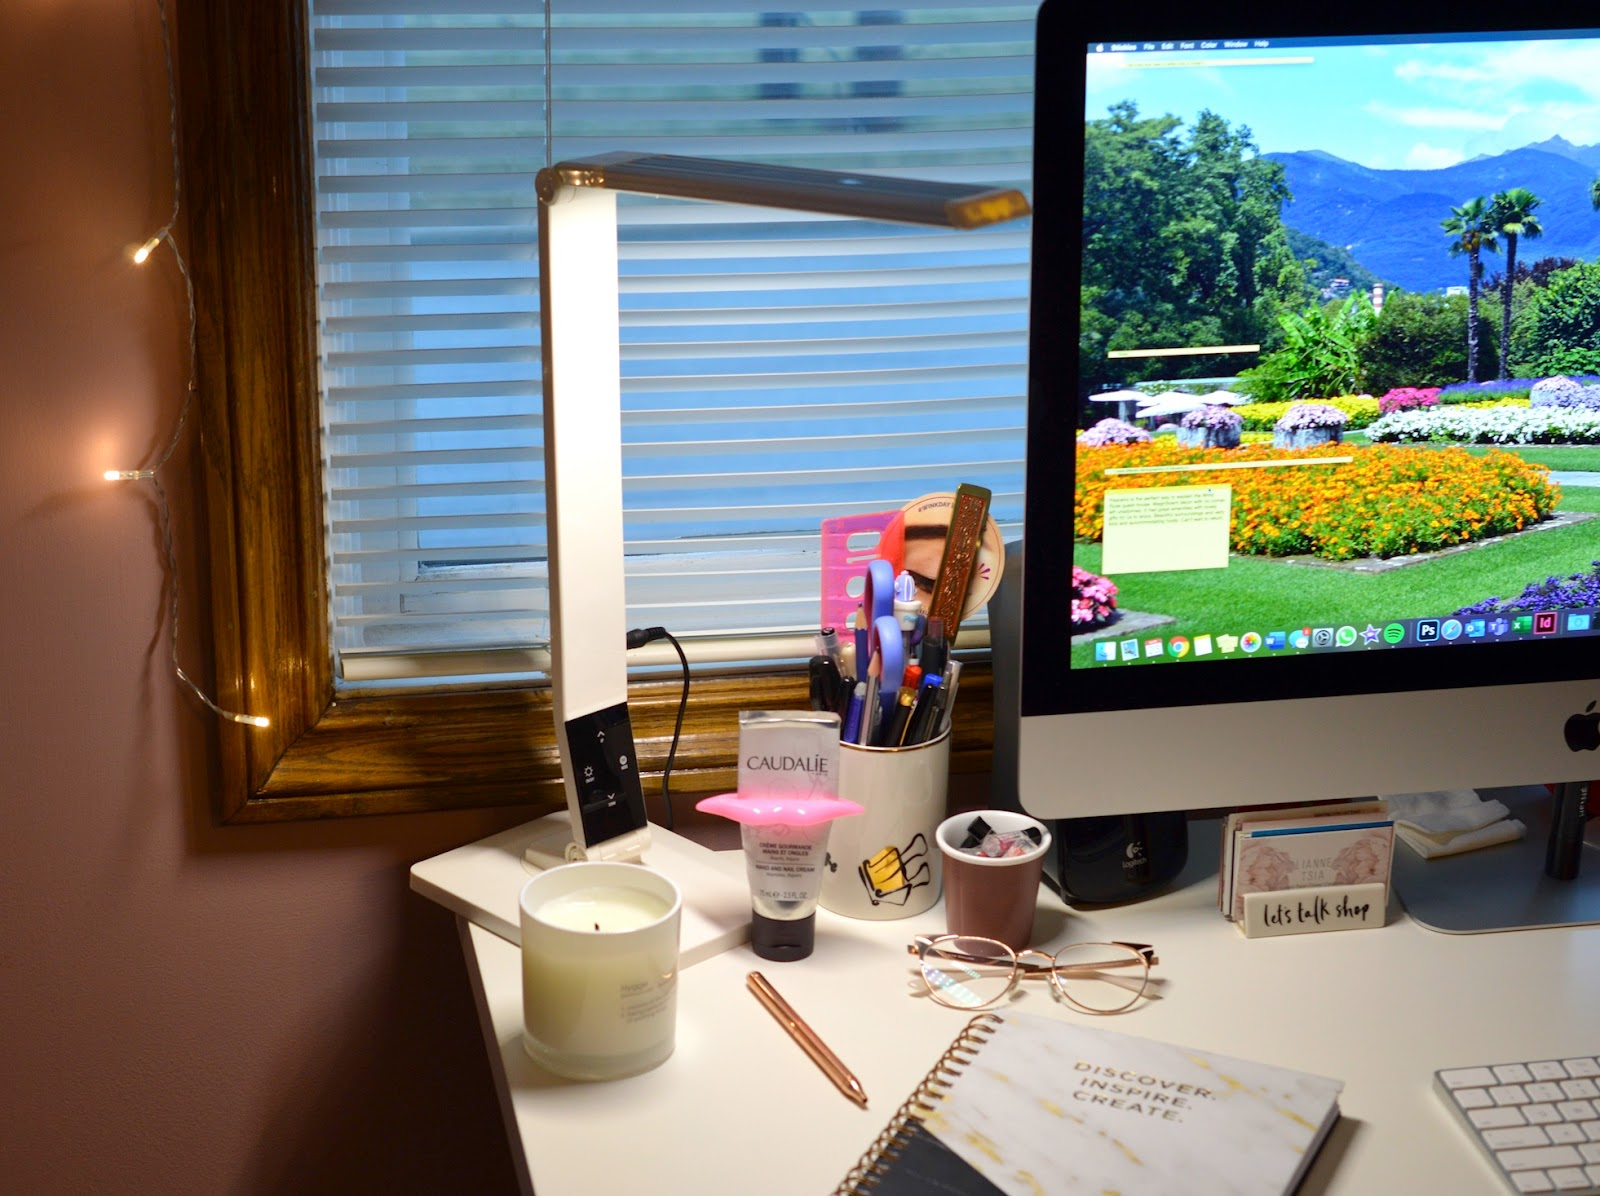 AnthroDesk LED Desk Lamp Amazon